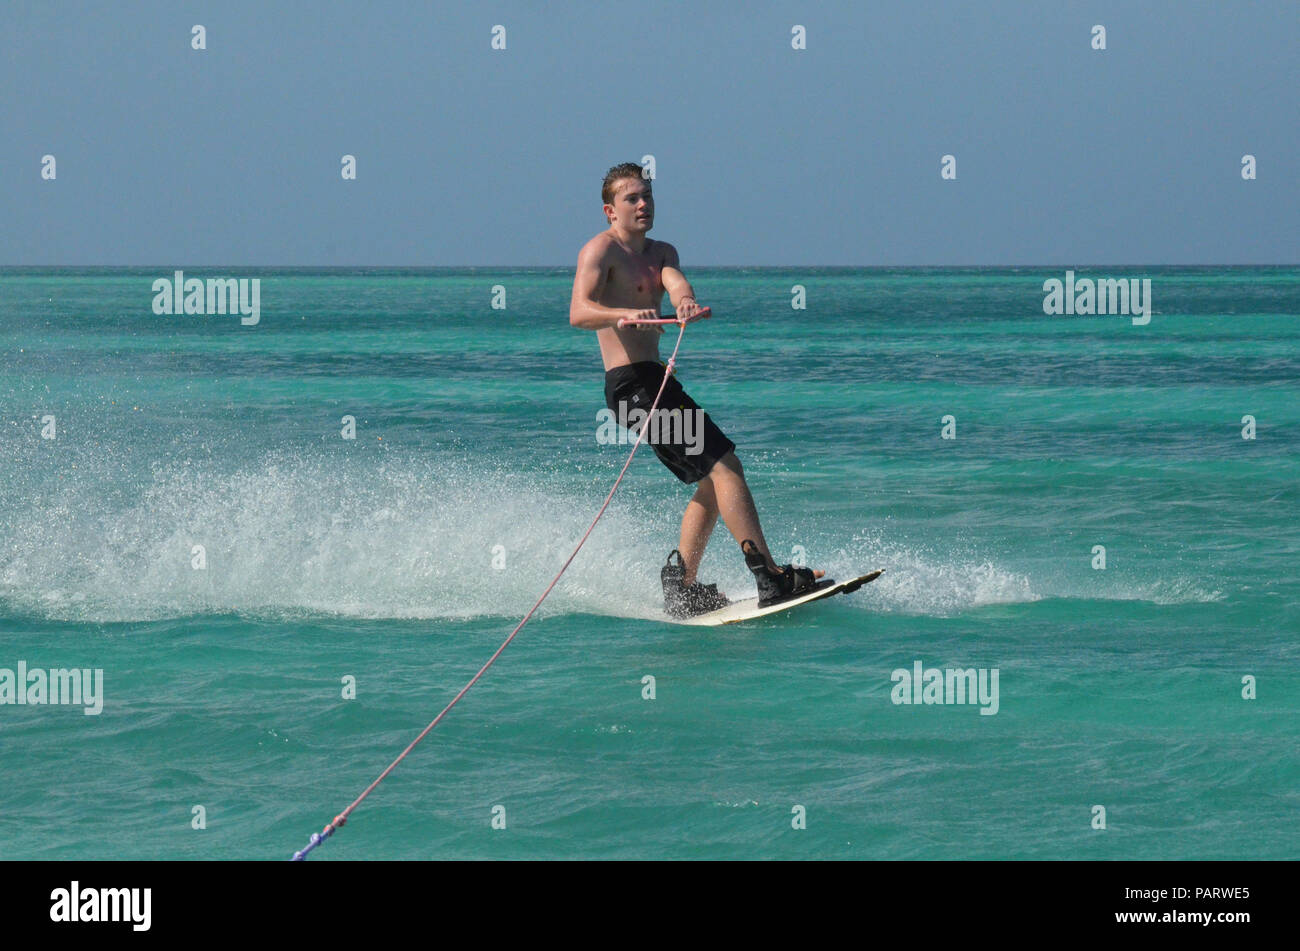 Wakeboarding young guy with black swim trunks in Aruba. - Stock Image